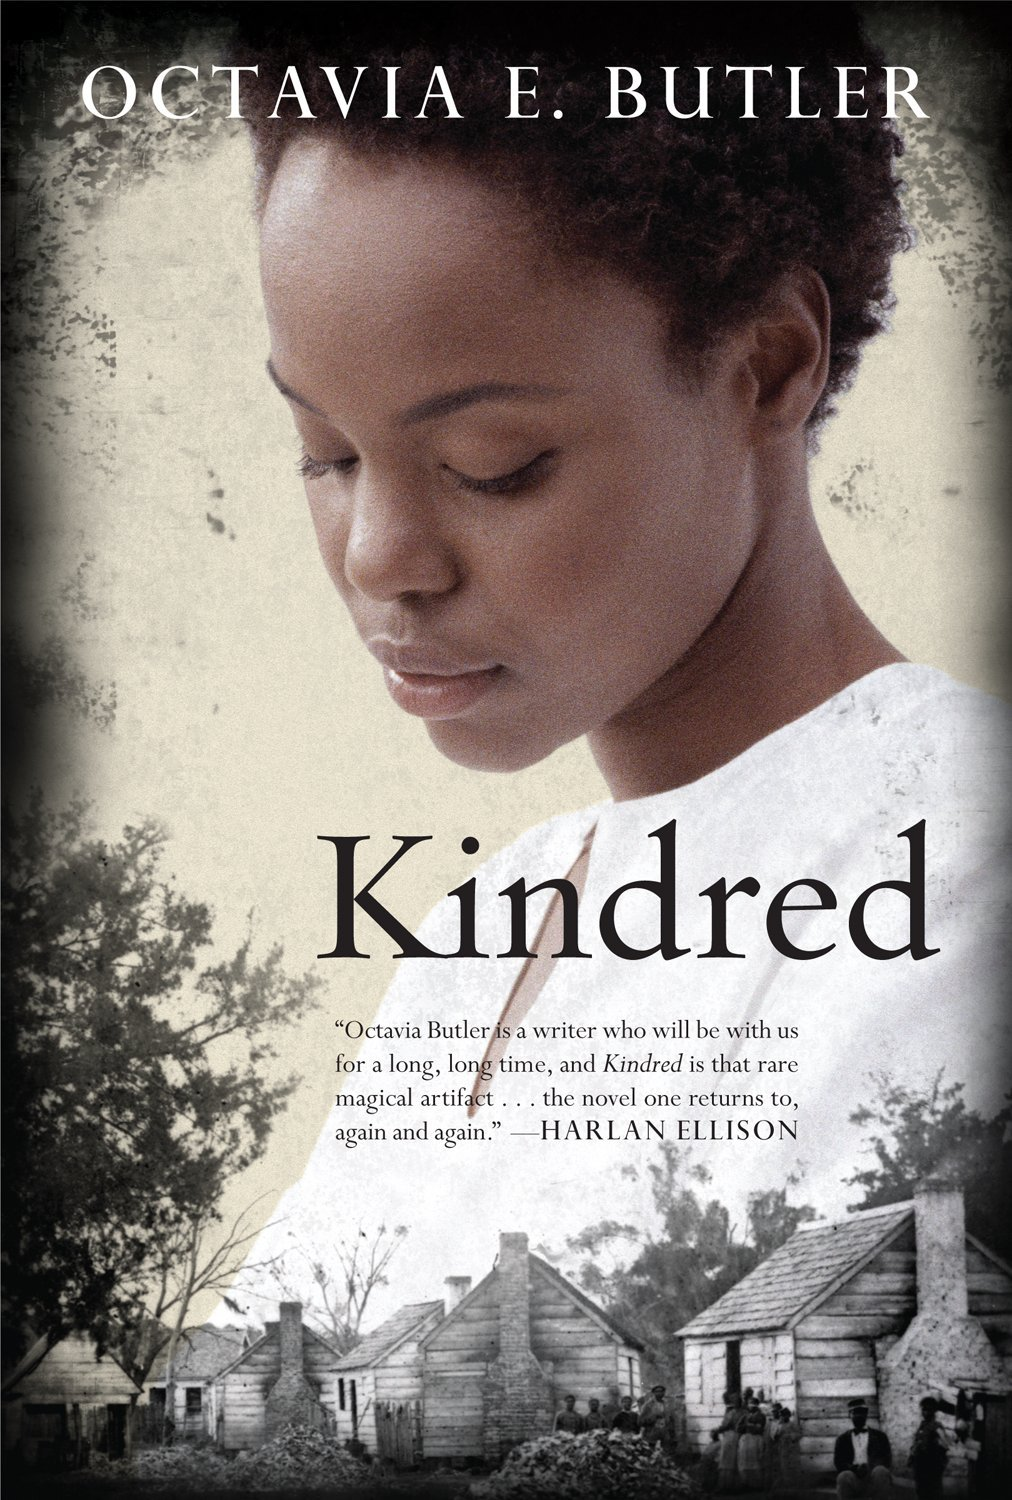 10 Literary works by #poc that would be on our curriculum list!